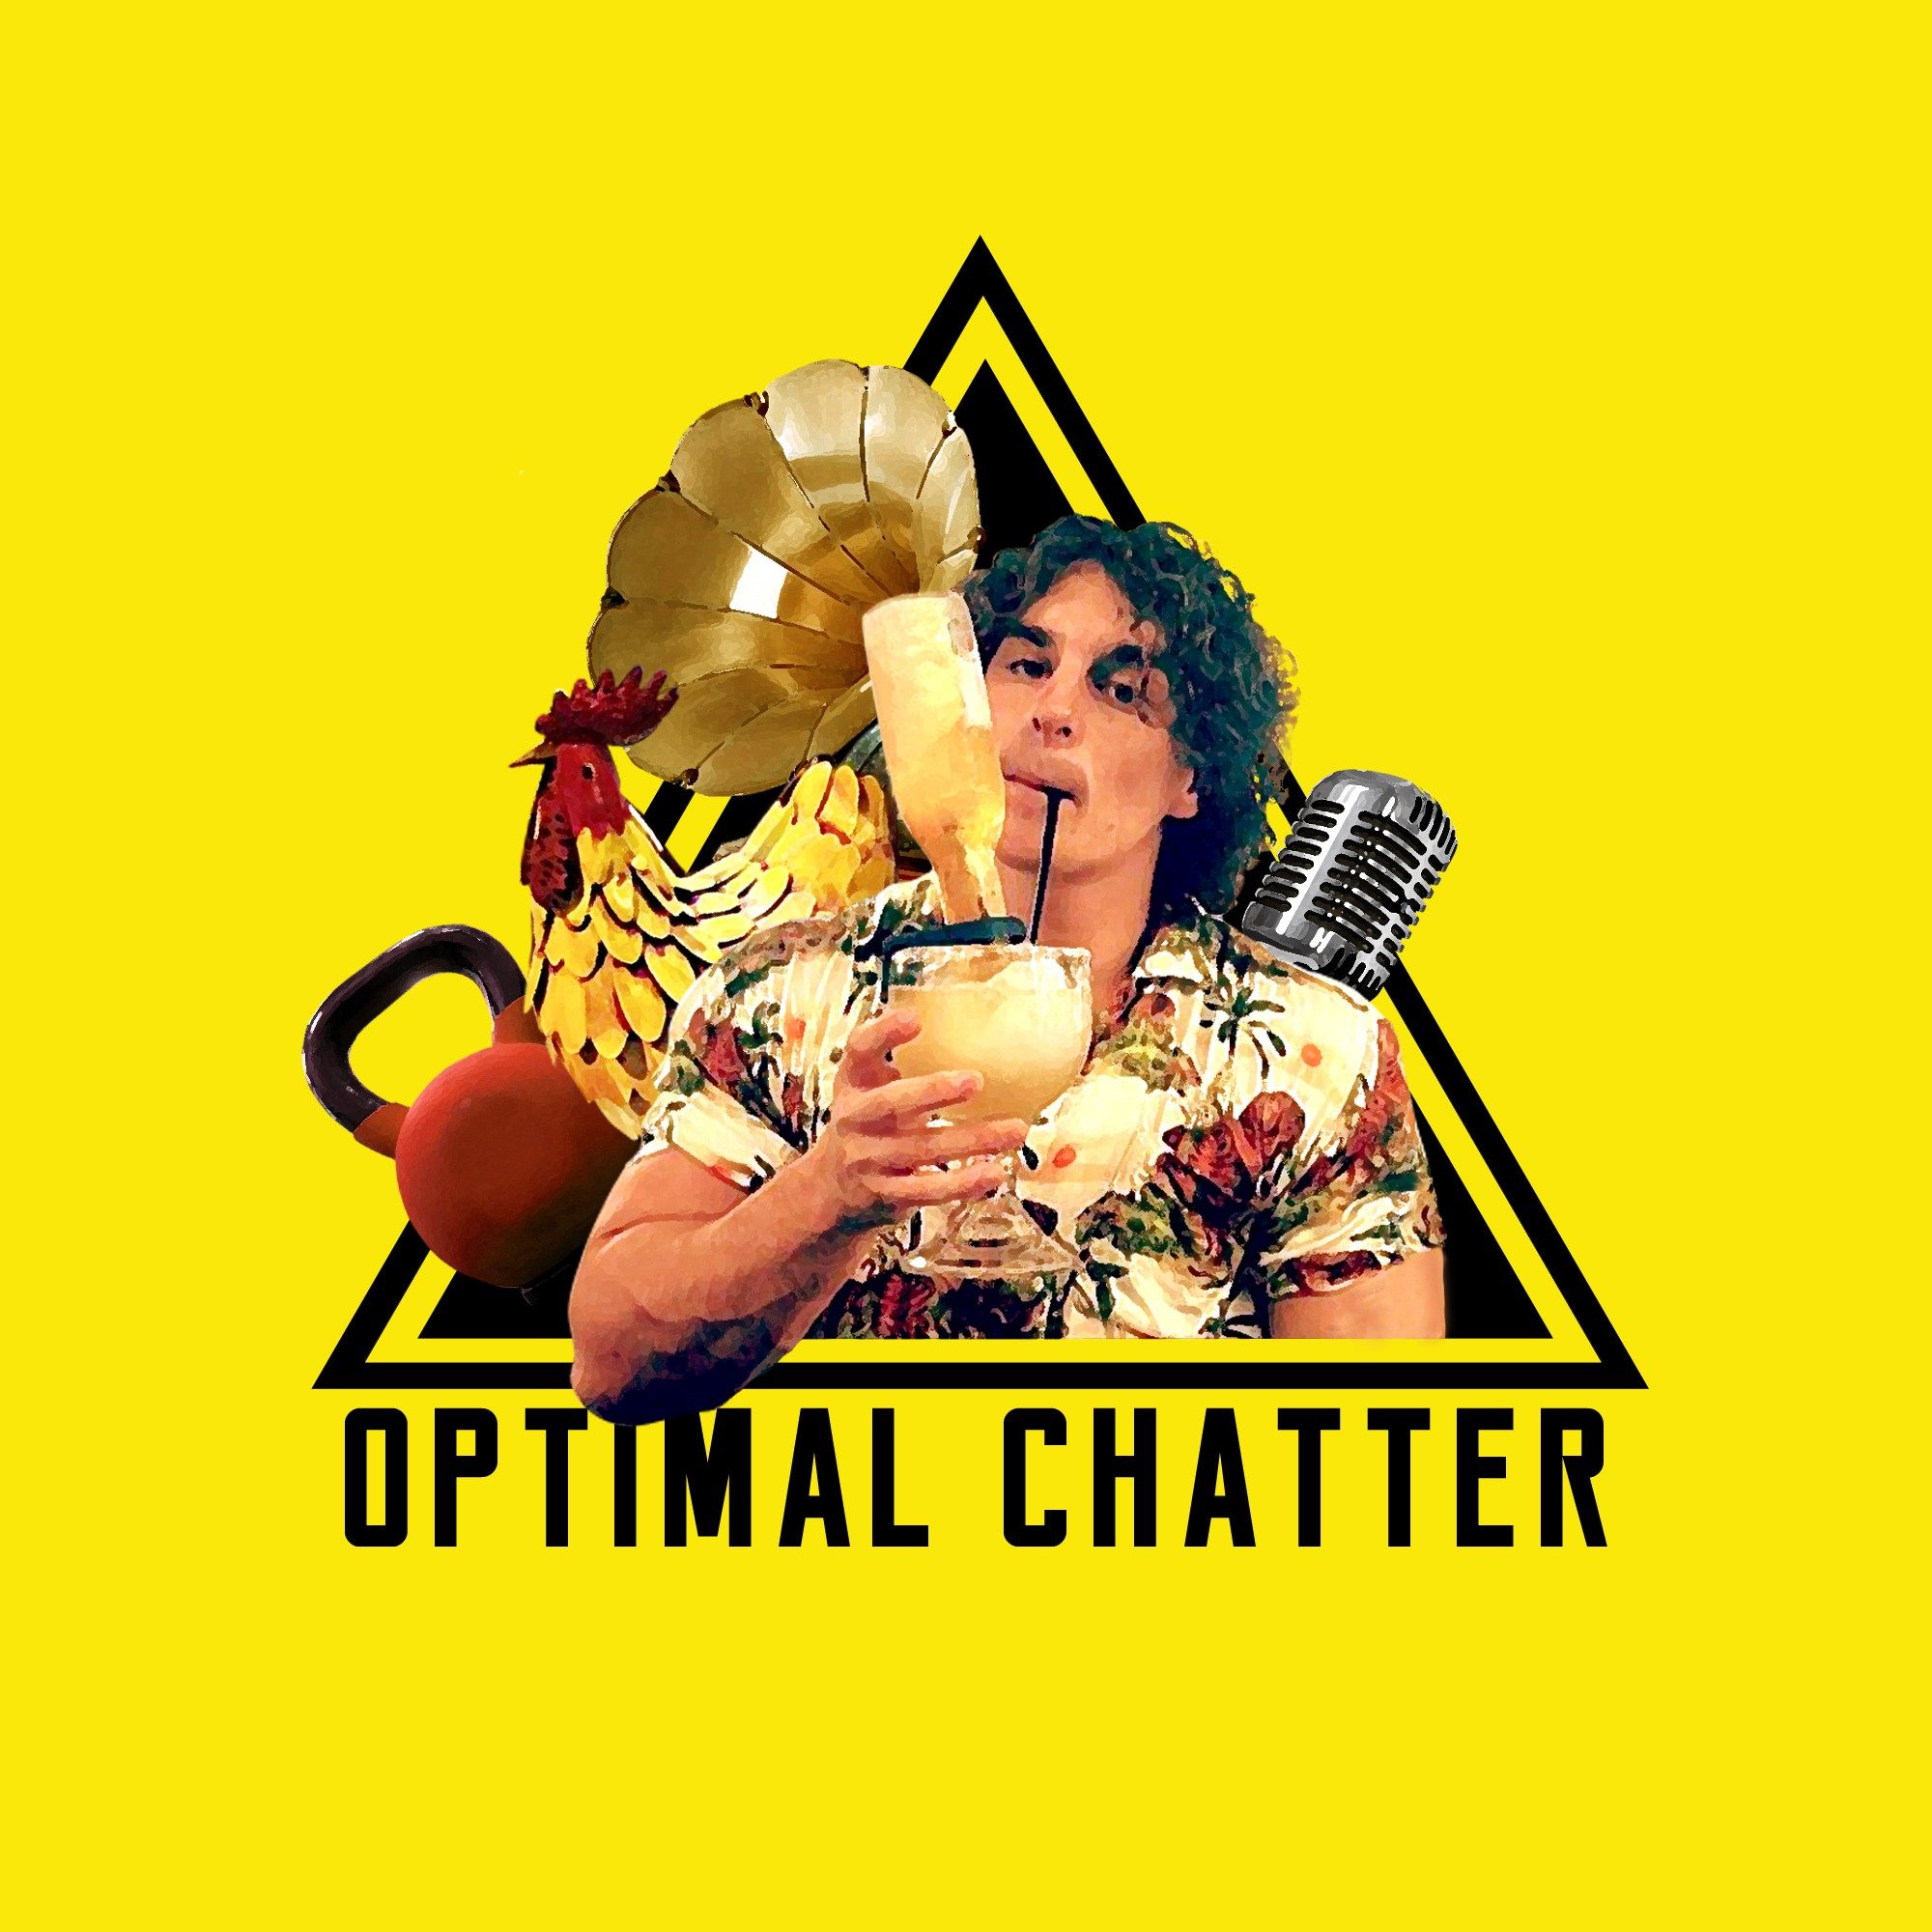 Optimal chatter - Podcast graphics contest.